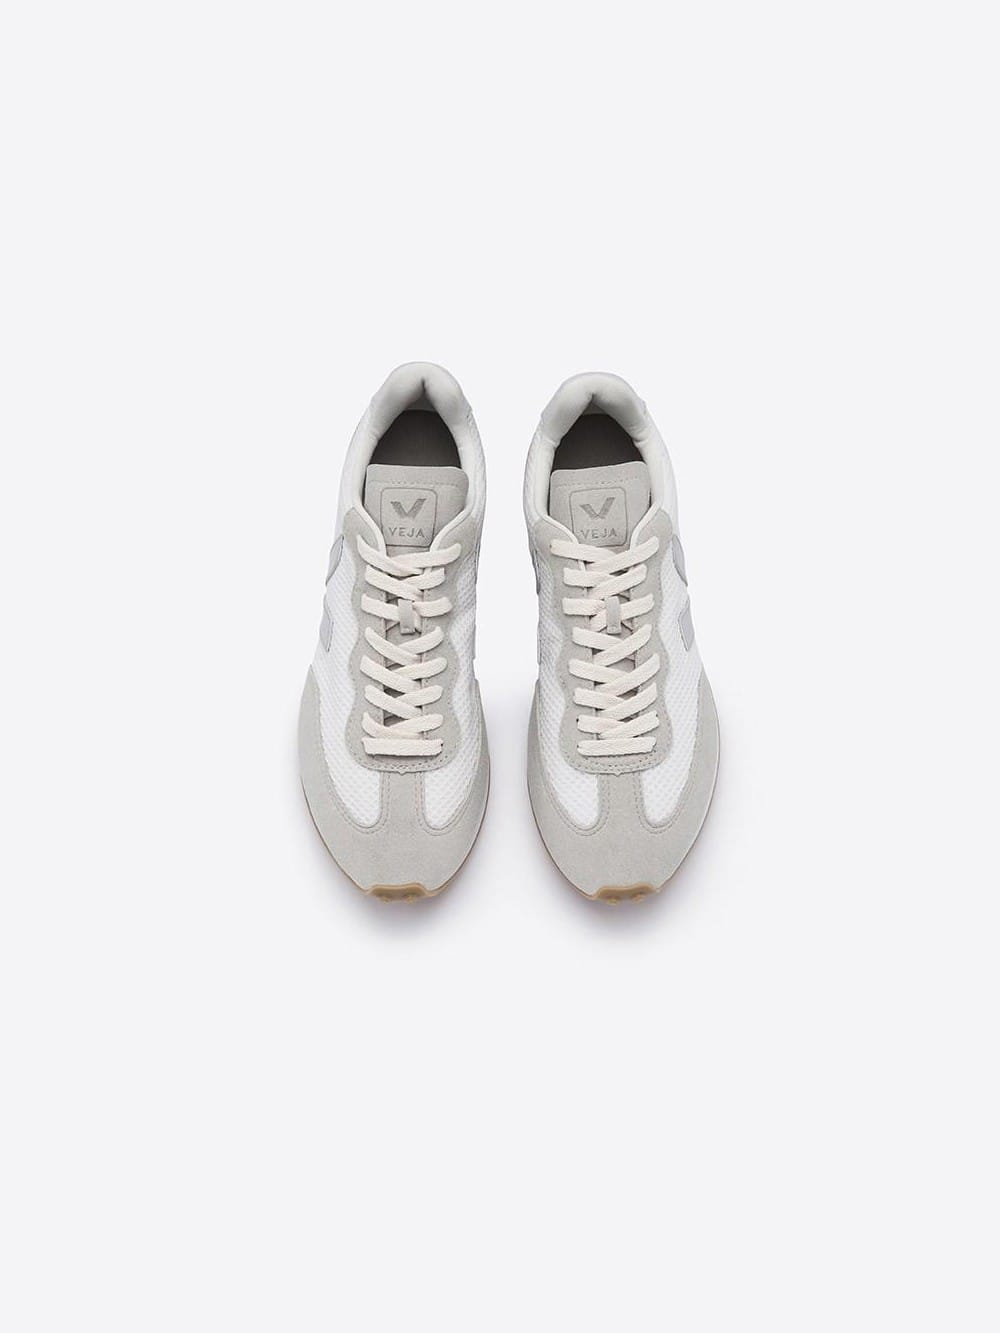 Vegan Veja Sneakers Riobranco Hexamesh Arctic Natural